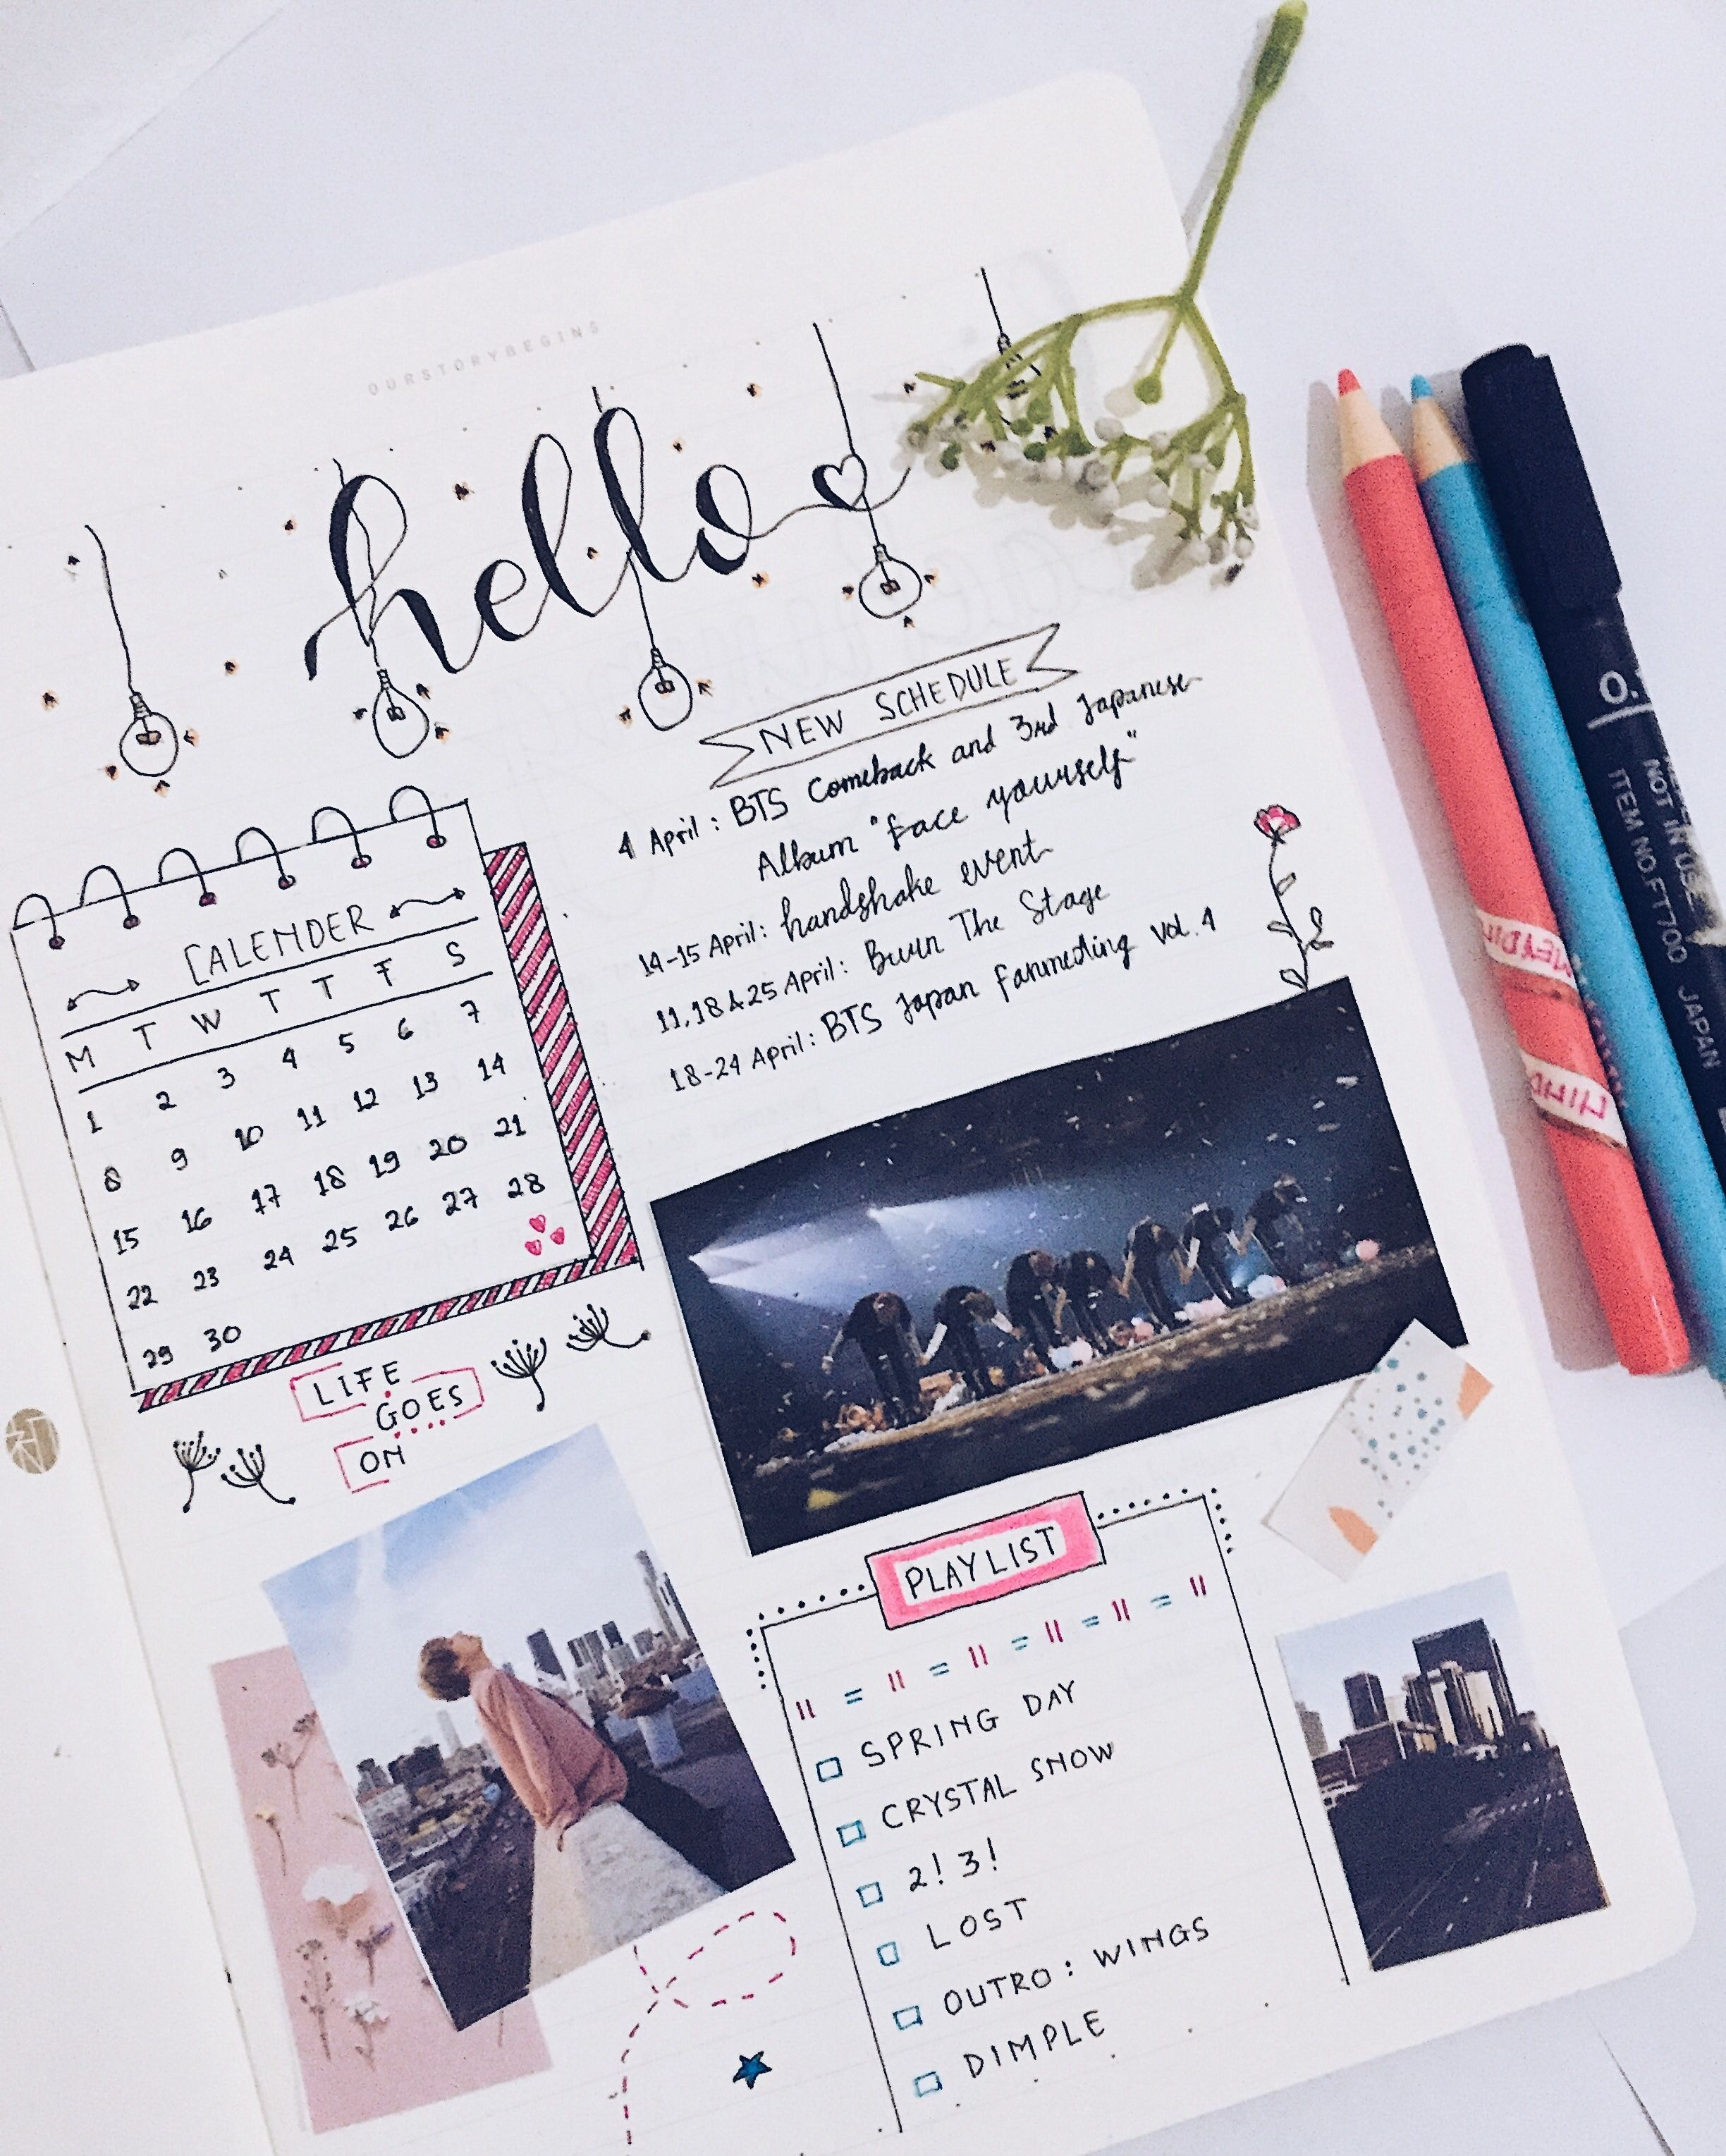 Awesome Bts Journal Book wallpapers to download for free greenvirals